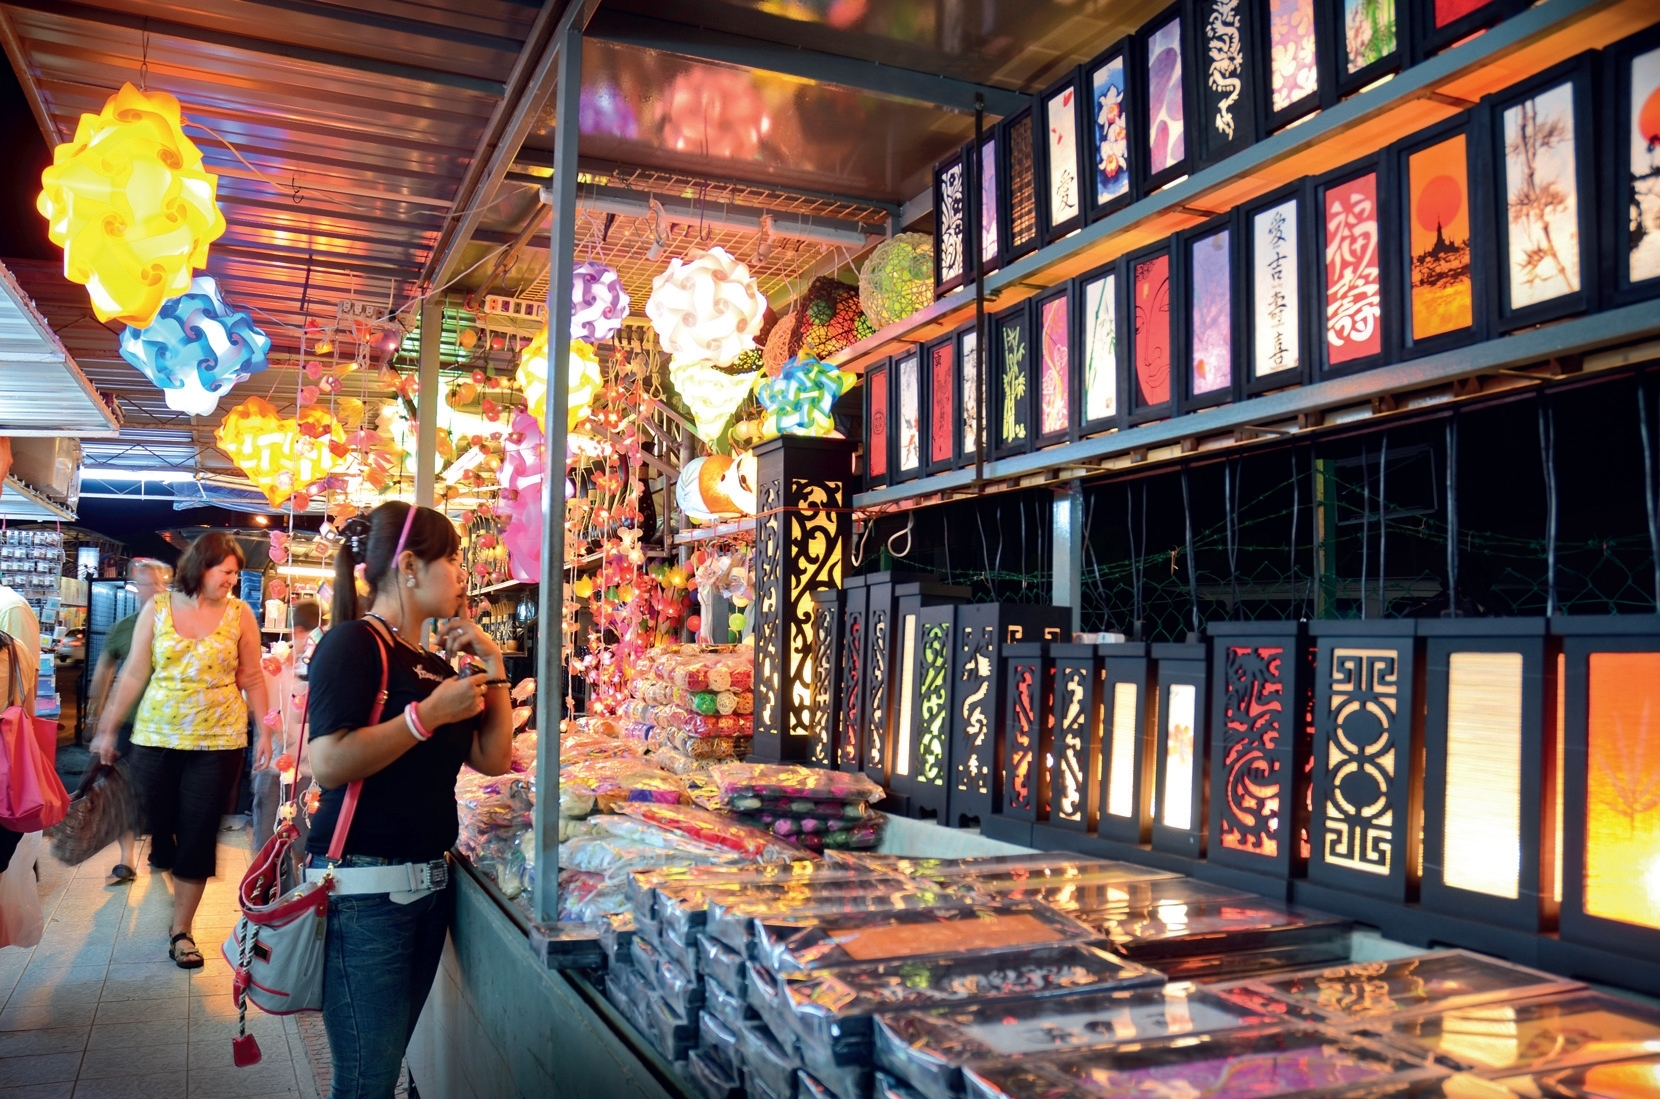 Take a look at some local craft while chomping on street food (Image Credit: Timeout.com)